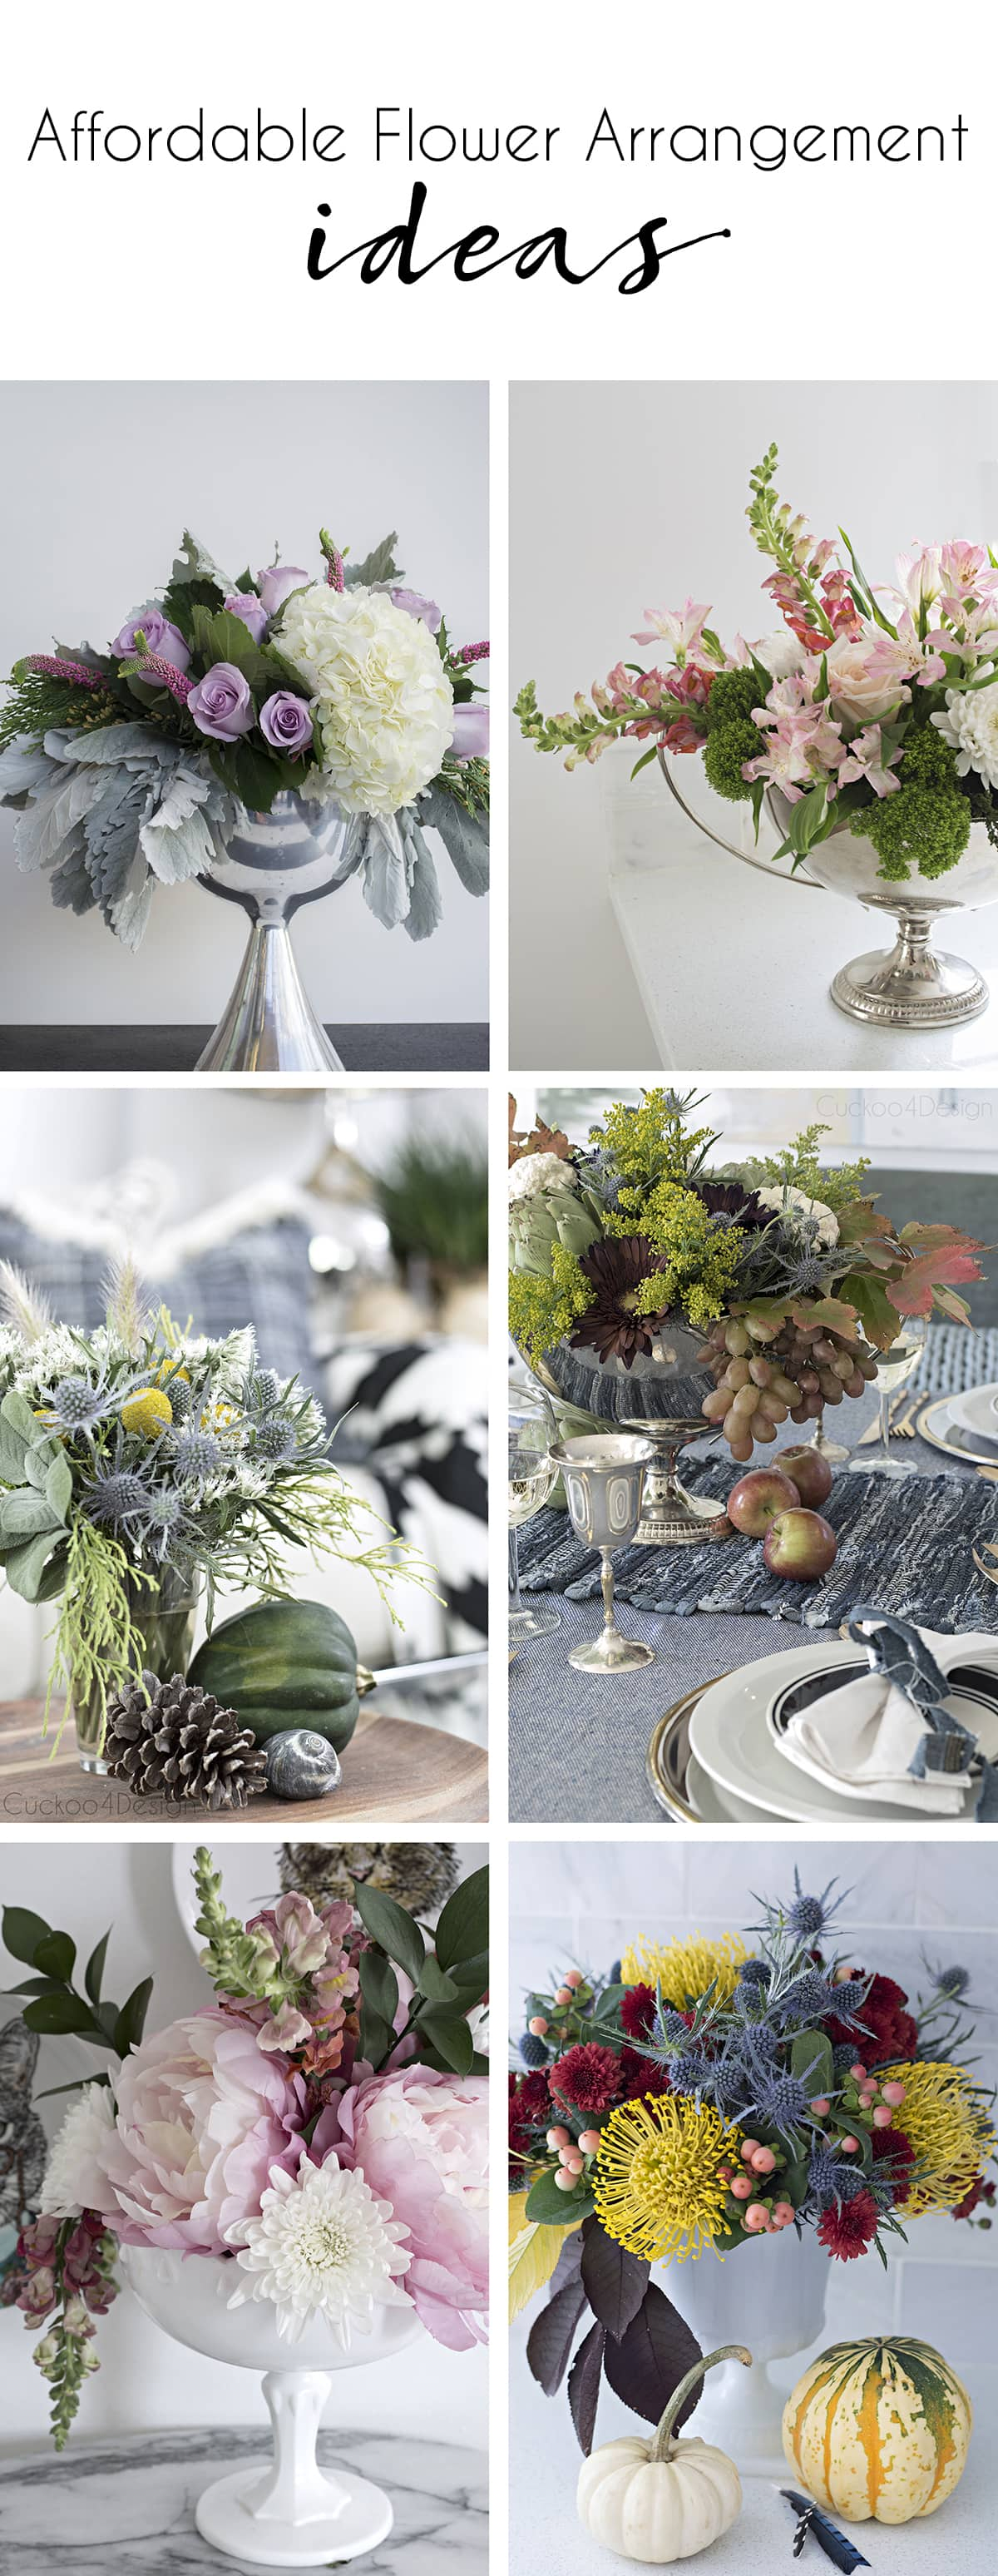 affordable flower arrangement ideas